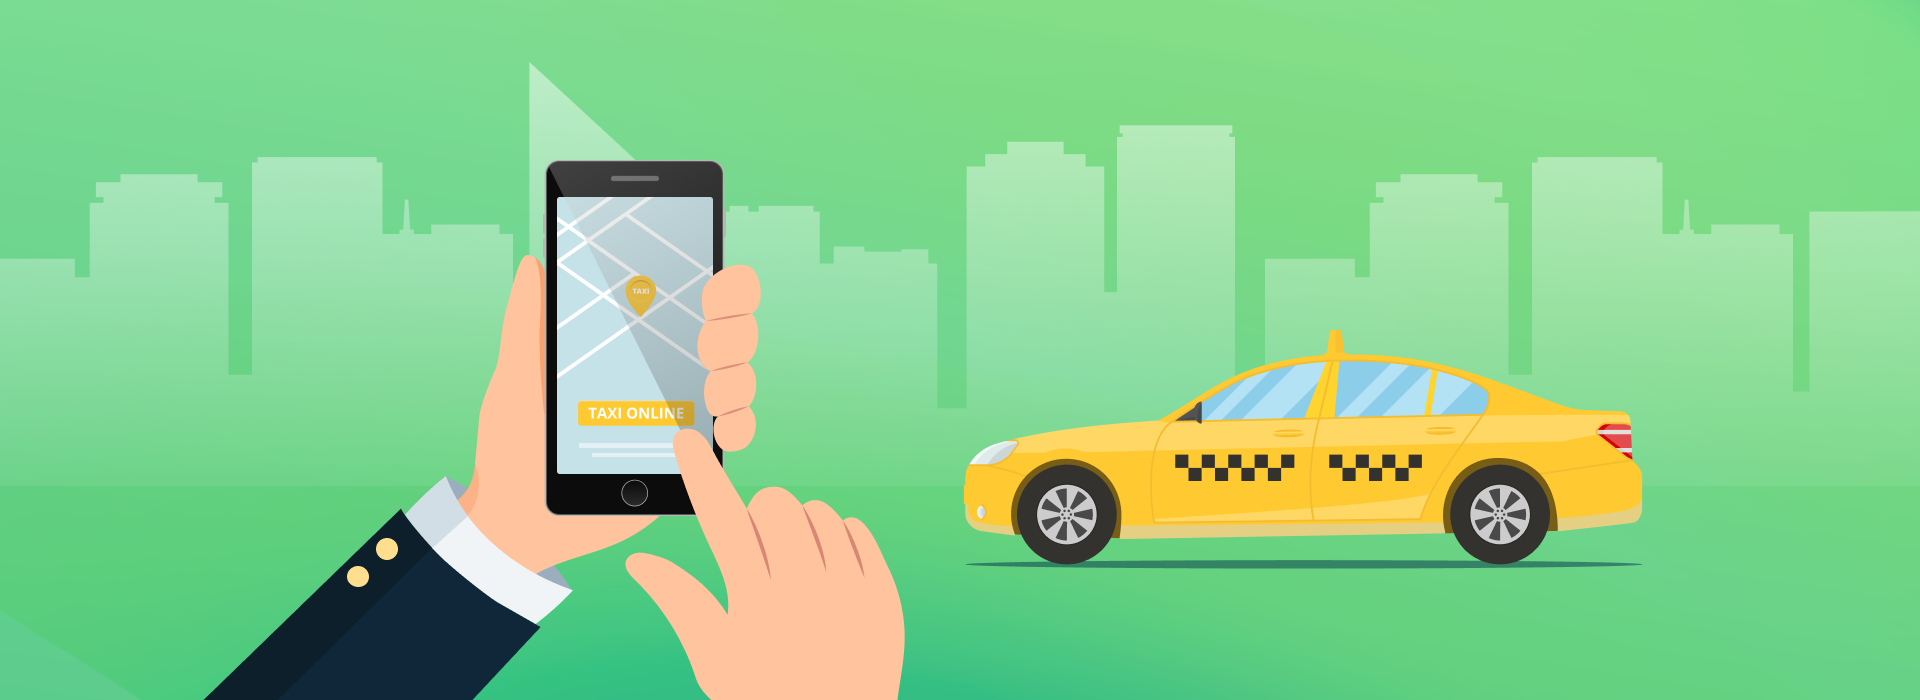 How to Make an App Like Uber: Process, Tips & Features | MLSDev